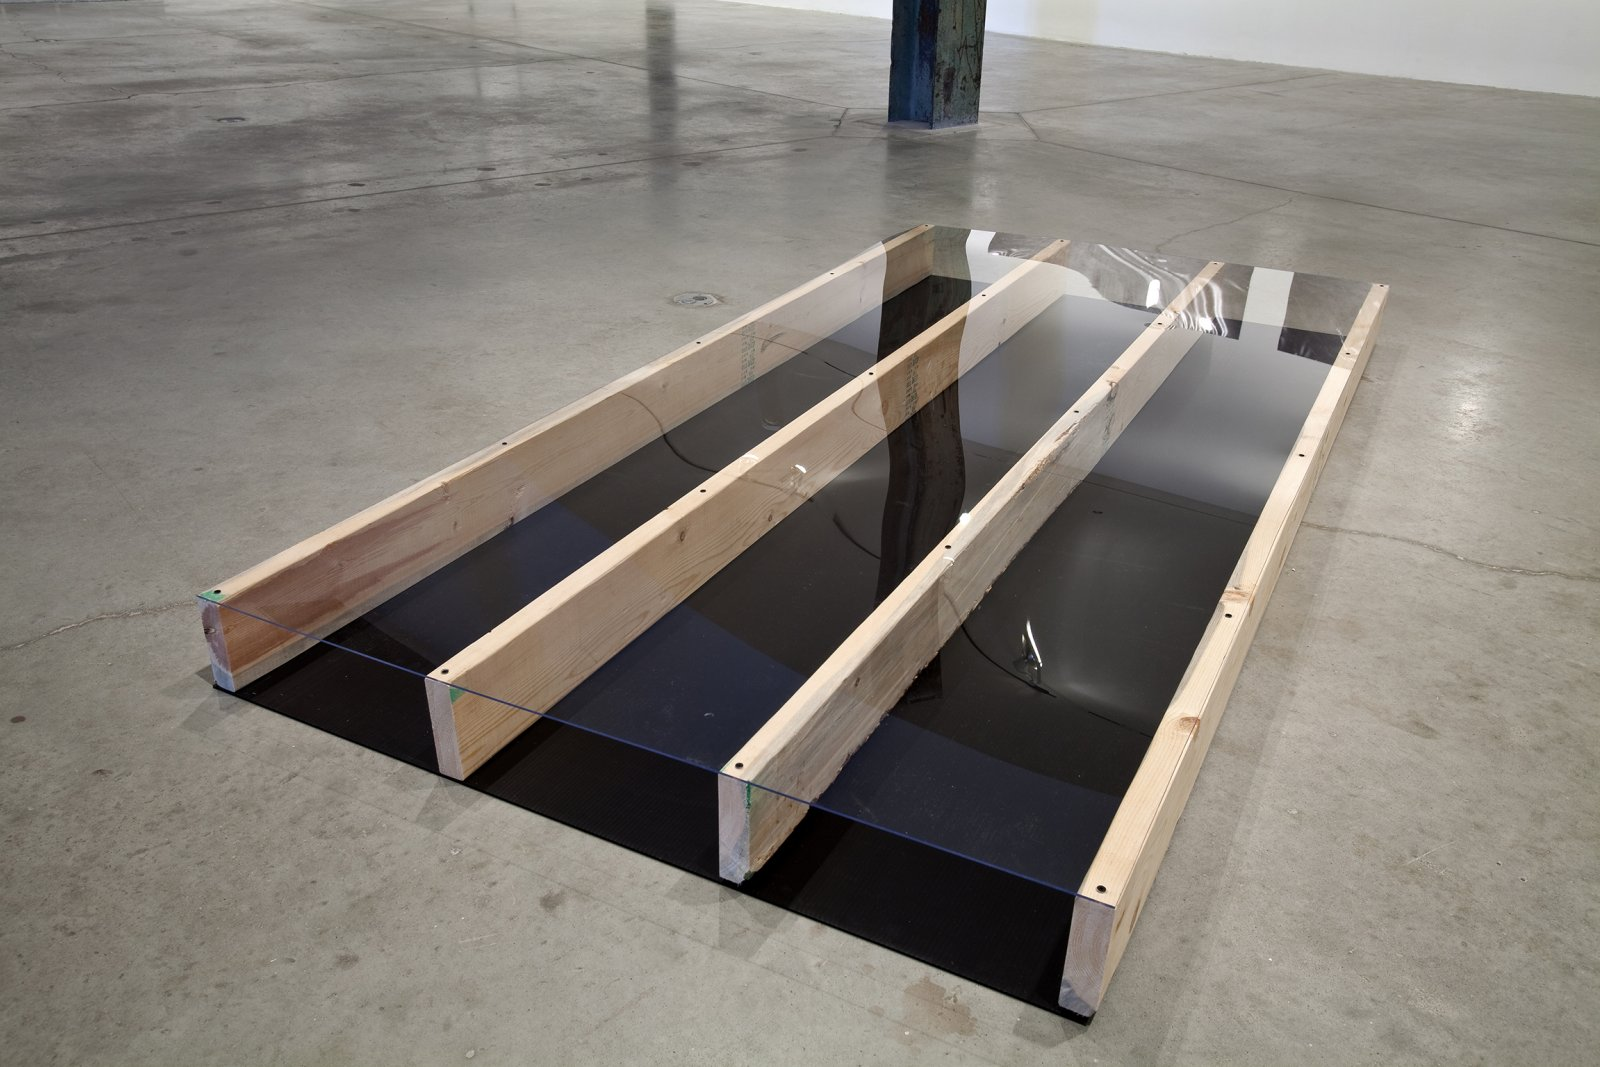 Ian Wallace, Untitled (Plank Piece), 1968, wood, vinyl, dimensions variable. Installation view, The Economy of the Image, The Power Plant, Toronto, 2010 by Ian Wallace